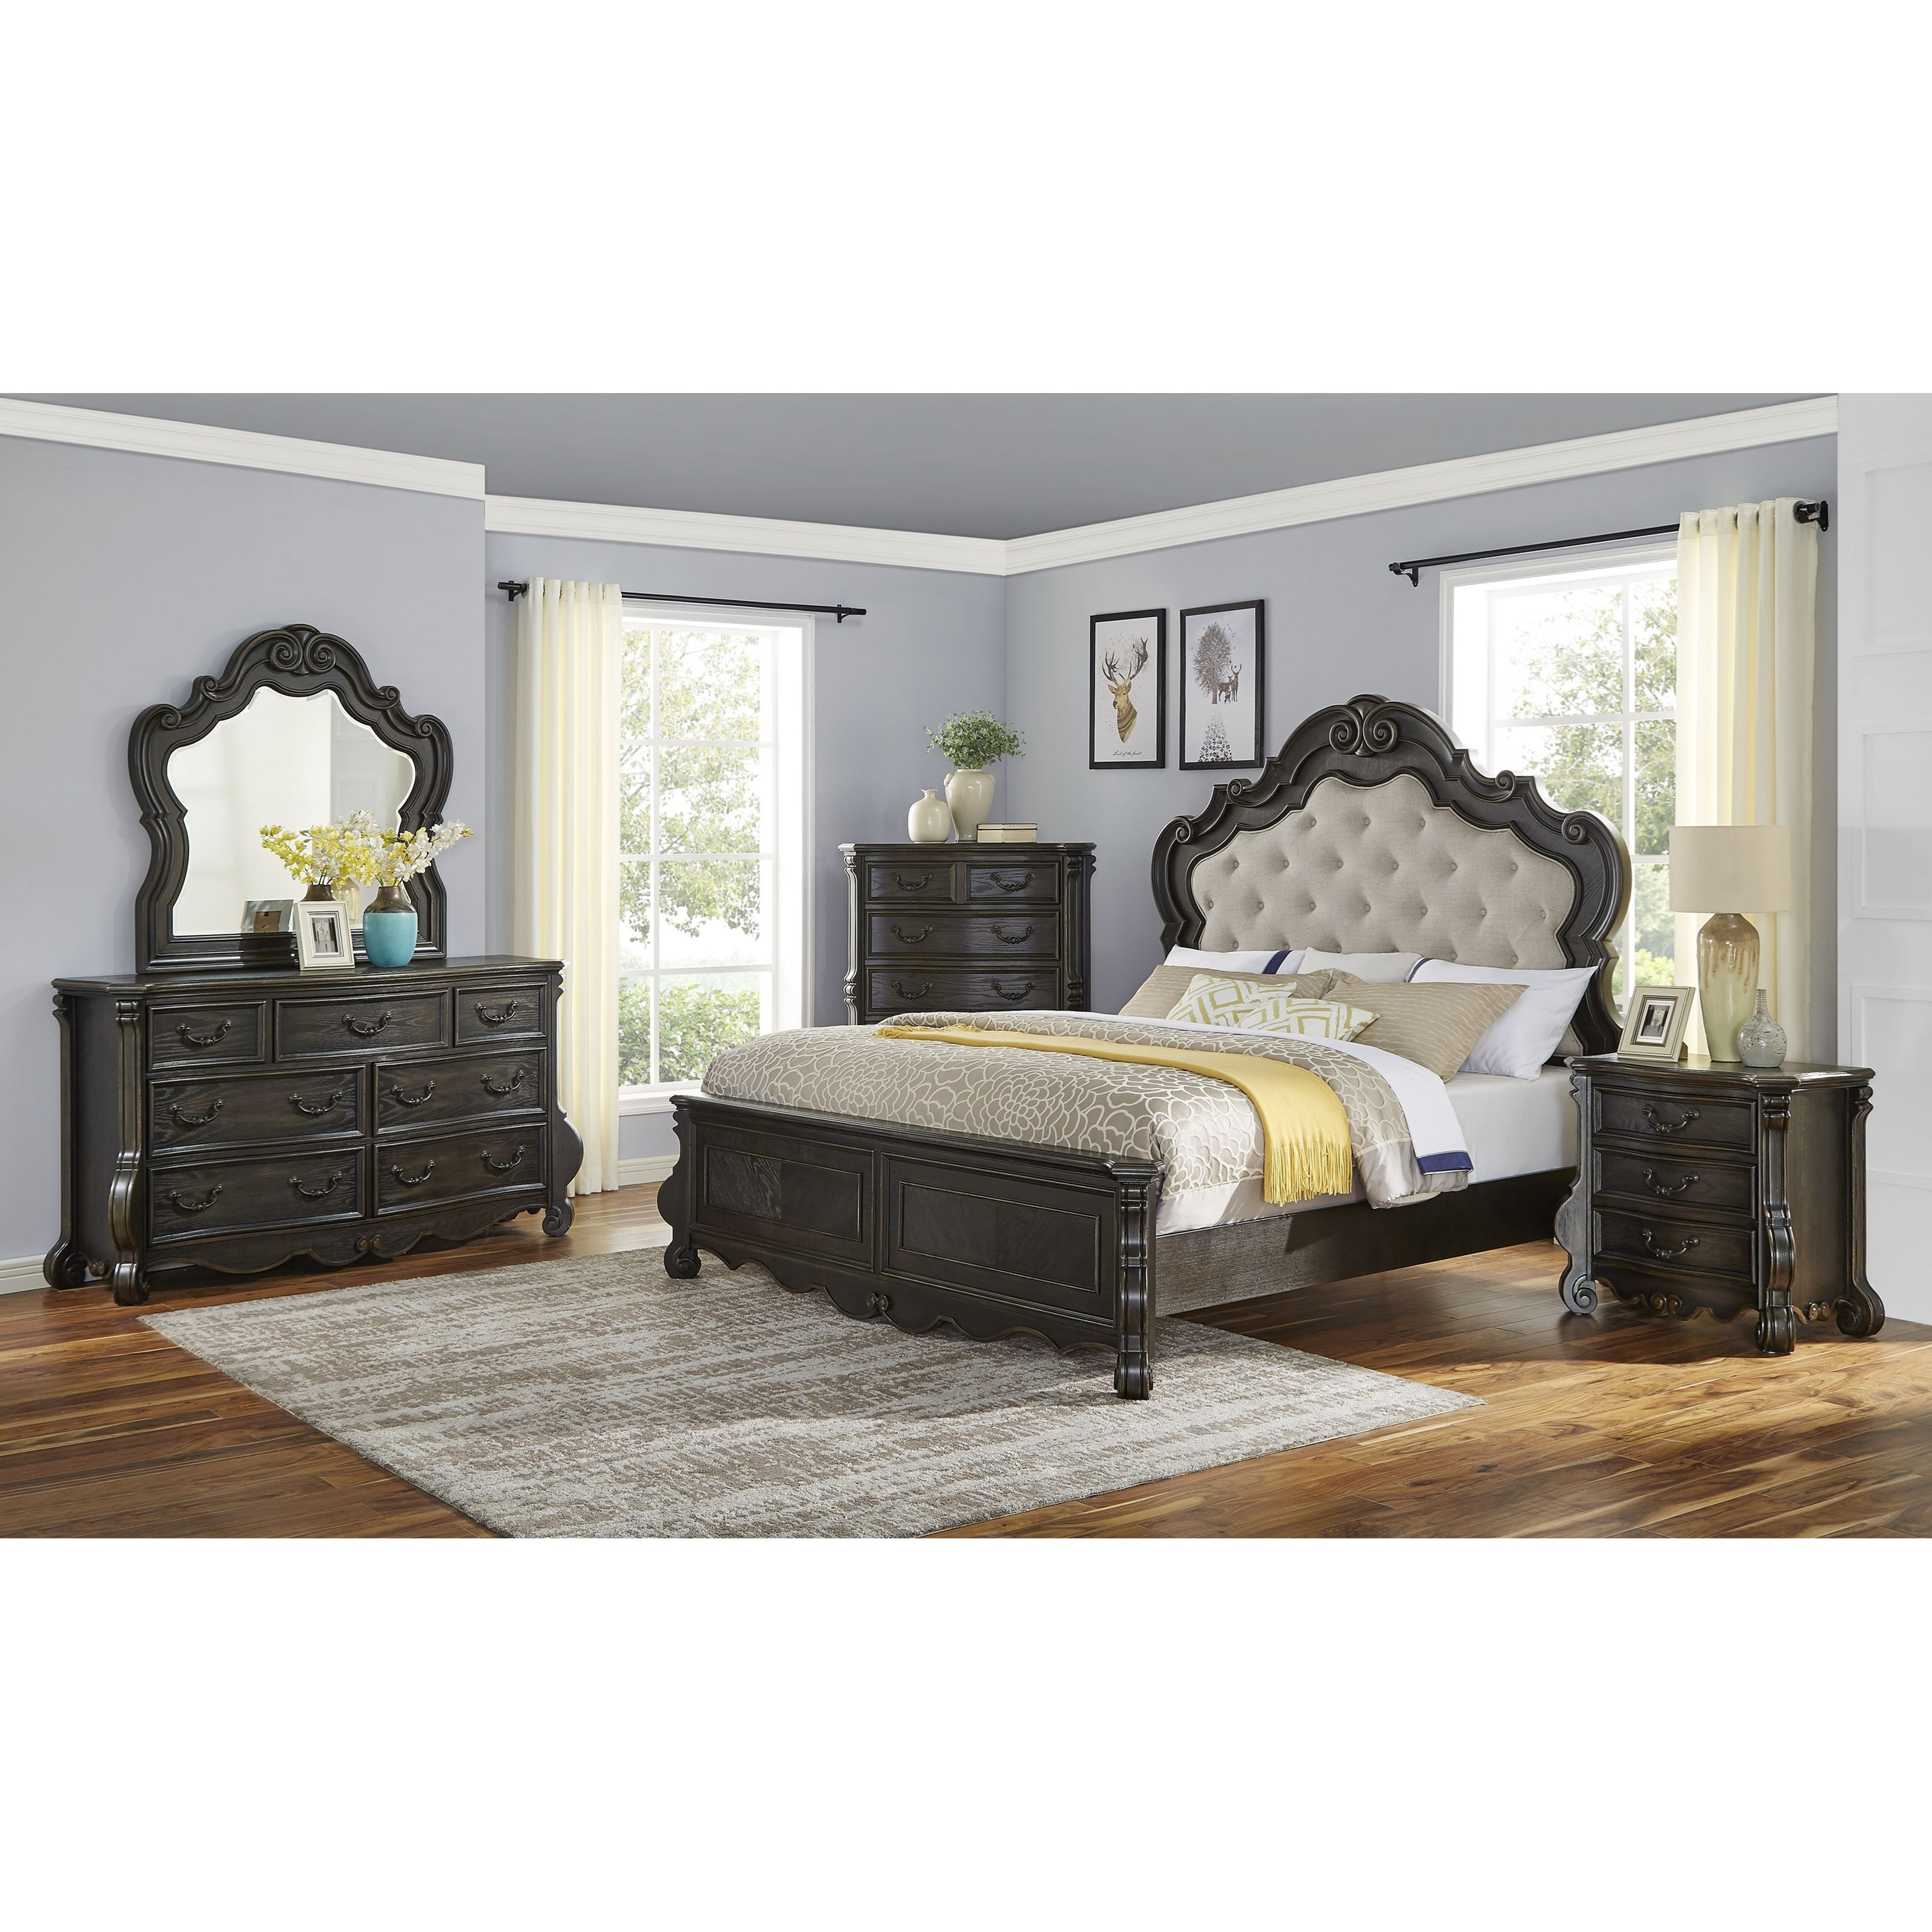 Rhapsody 5-Piece Queen Bedroom Set by Steve Silver at Northeast Factory Direct